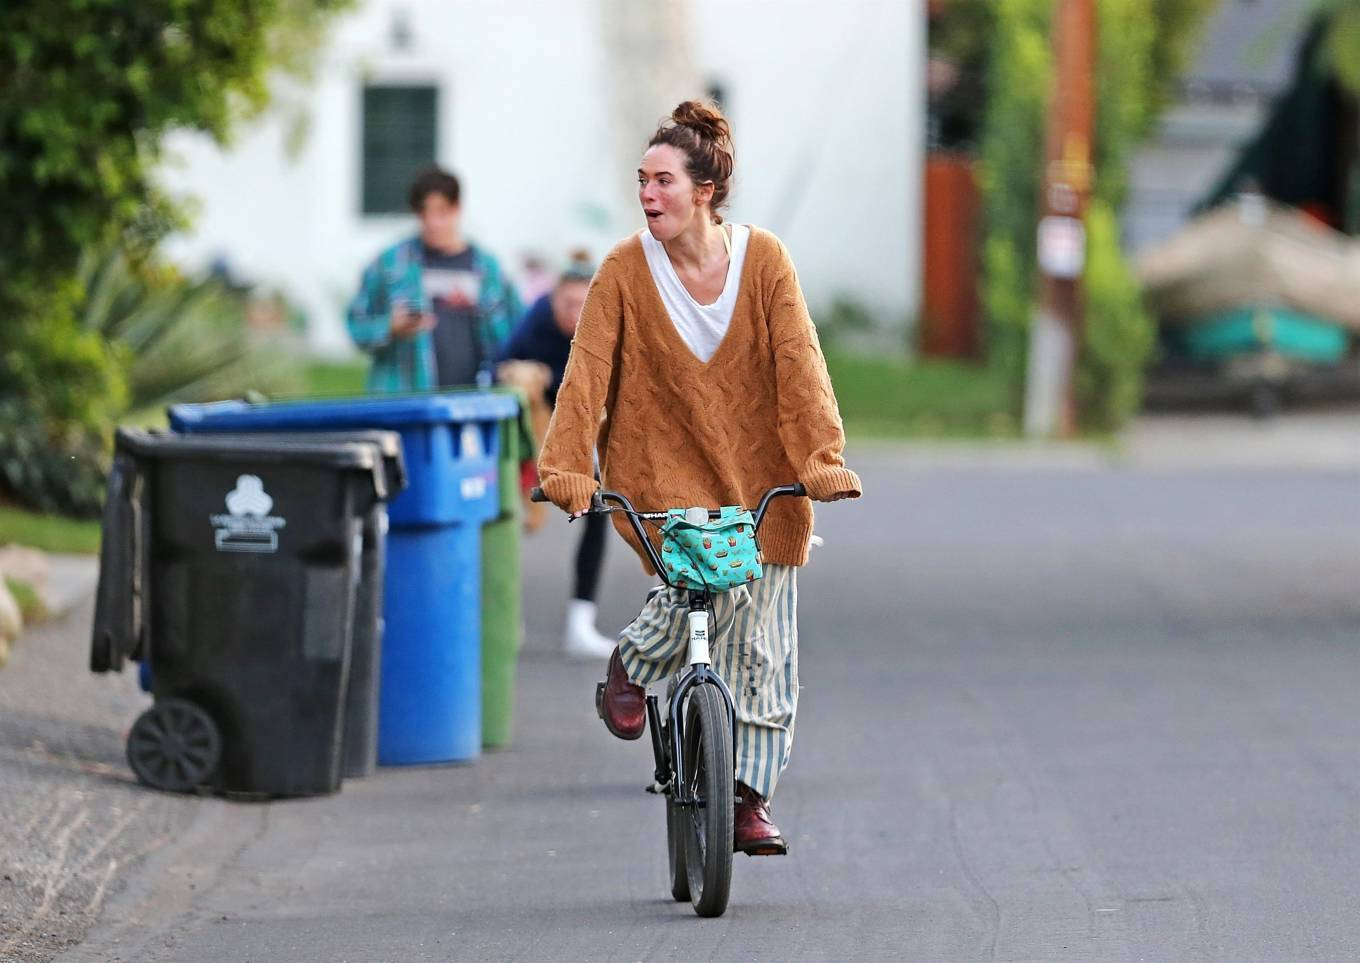 Lena Headey 2020 : Lena Headey – Riding a bicycle in Los Angeles-02